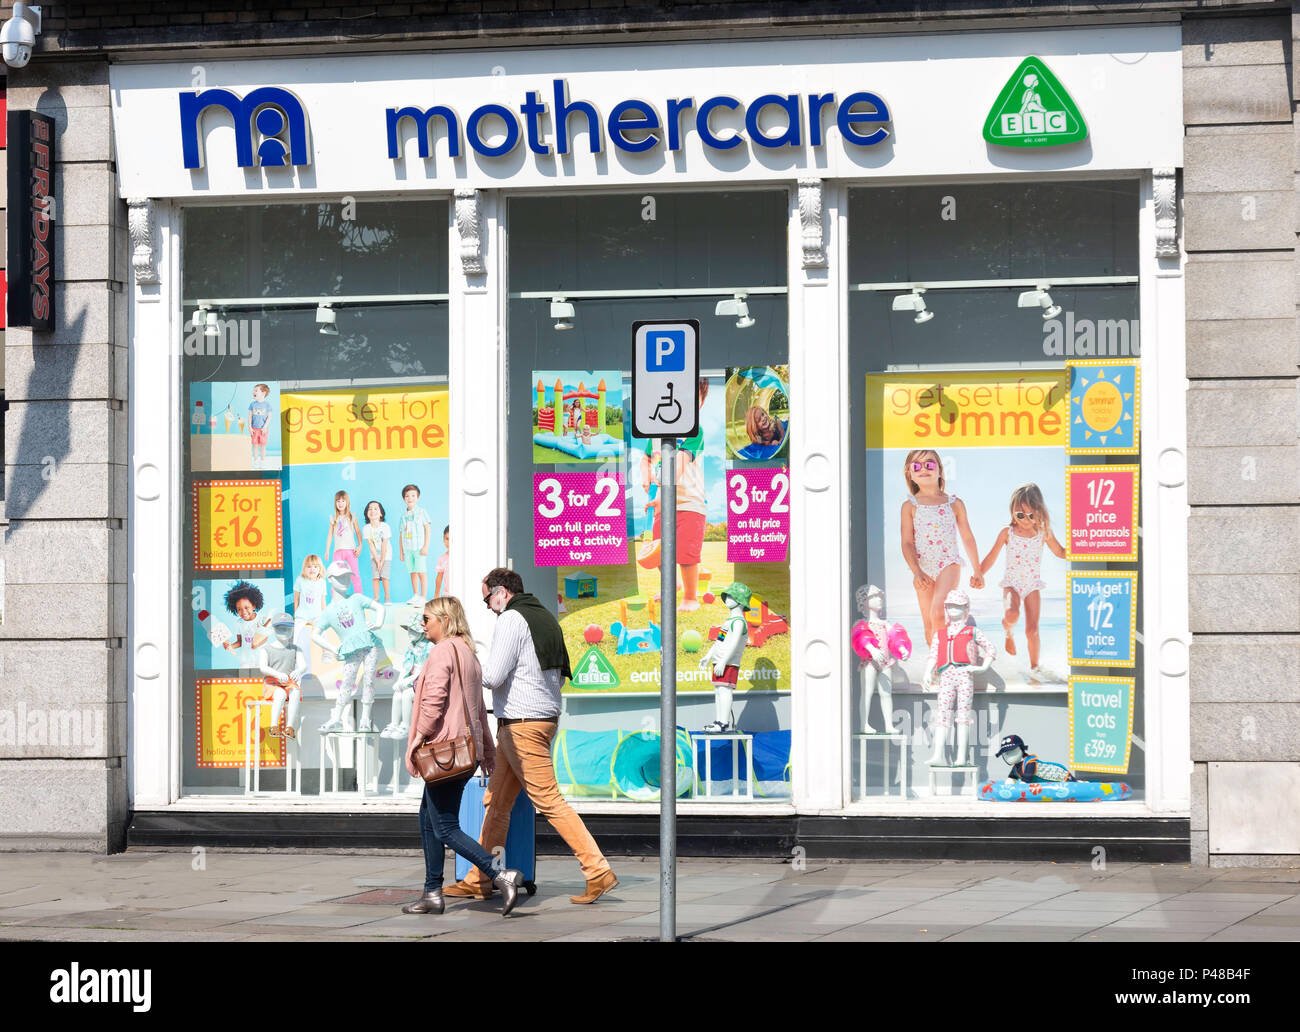 Mothercare Maternity Wear Store St Stephen S Green Dublin Leinster Province Republic Of Ireland Stock Photo Alamy